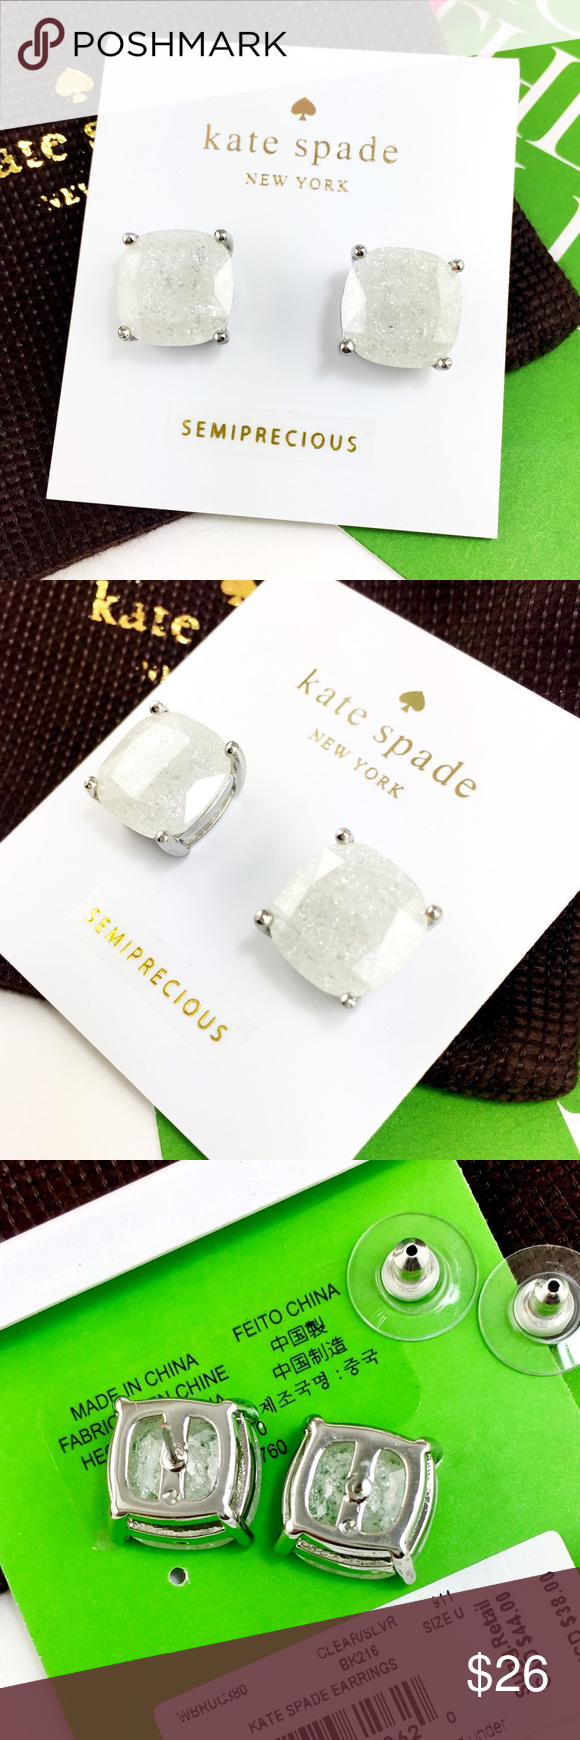 """NWT Kate Spade crystal square studs earrings NWT Kate Spade crystal square earrings, white color, 0.5"""" wide, natural stone, Silver tone with stainless steel post, brand new with pouch.   ~ please visit my store for more color and styles. ~ kate spade Jewelry Earrings"""